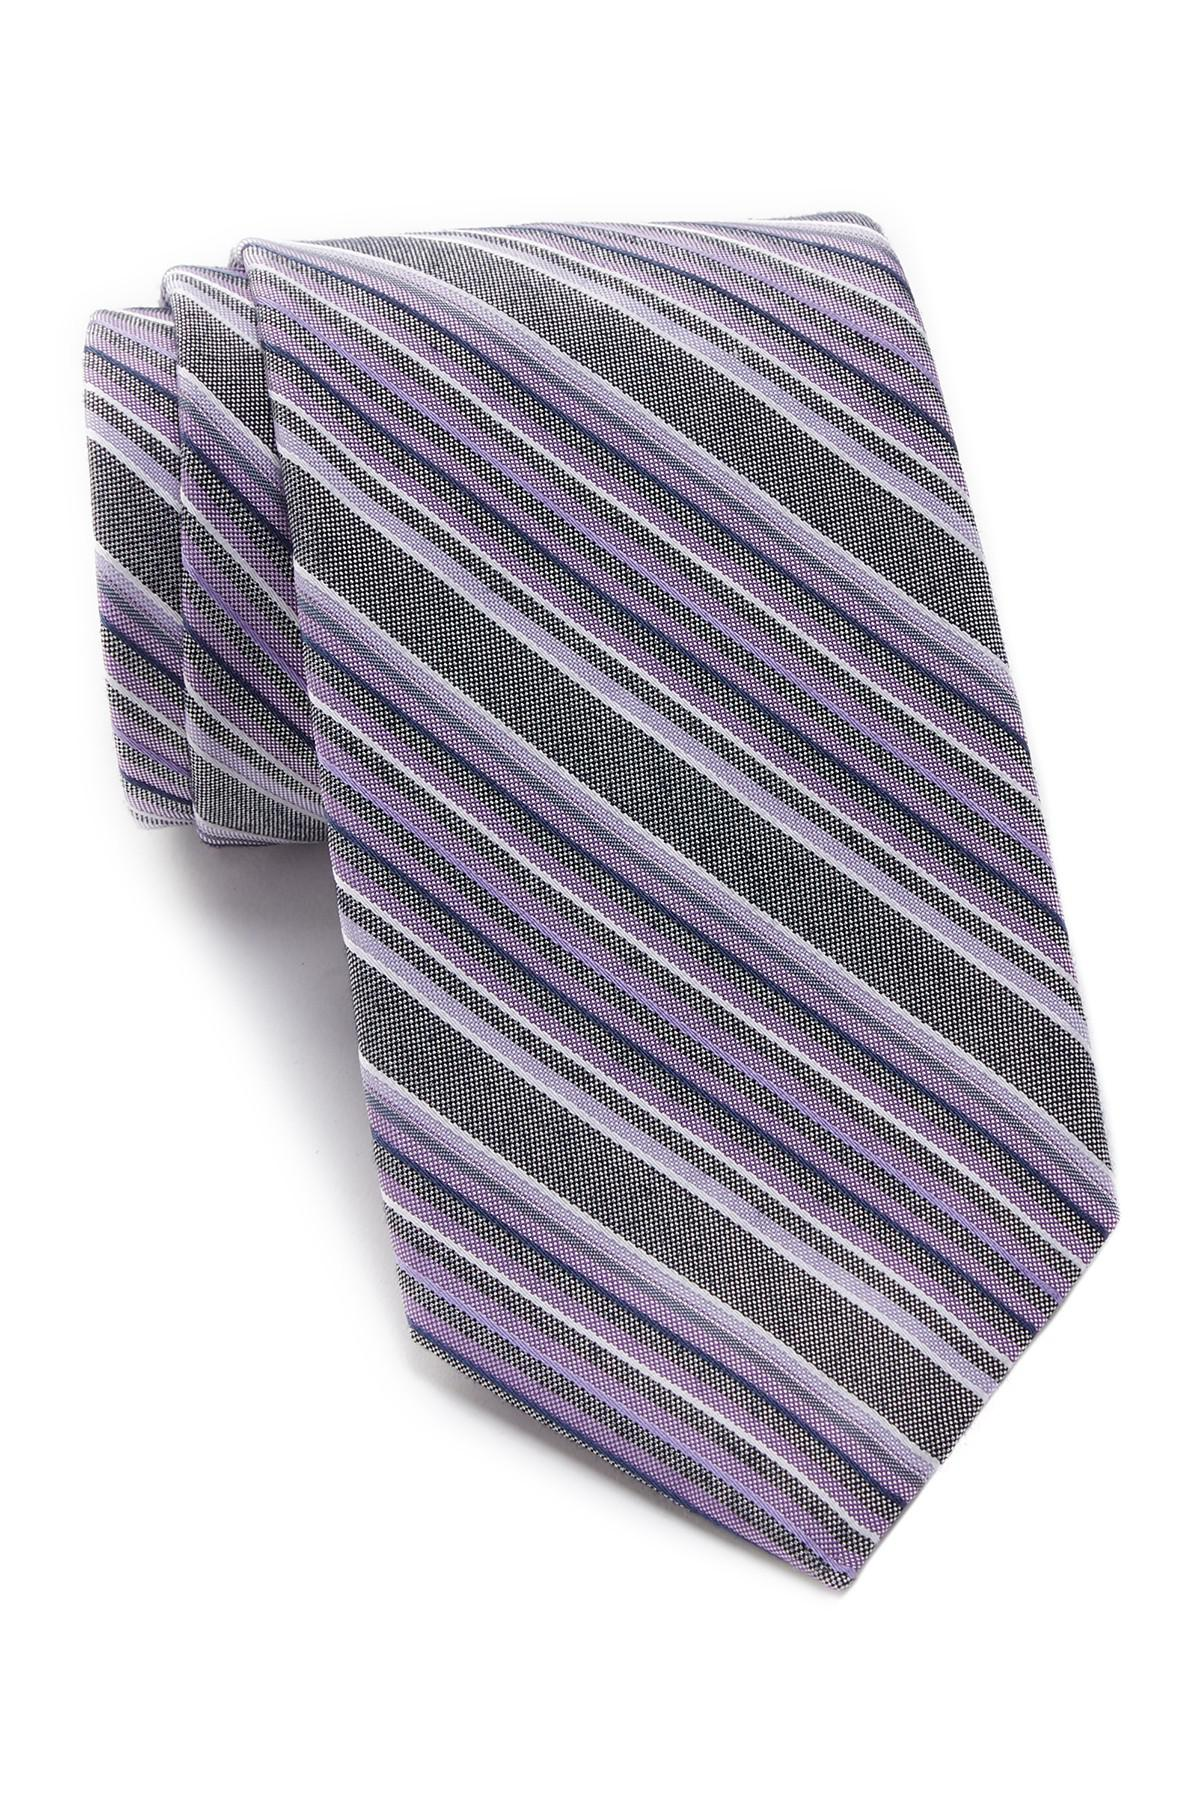 f660b6adfe6 Lyst - Calvin Klein Denim Multi-stripe Tie in Purple for Men